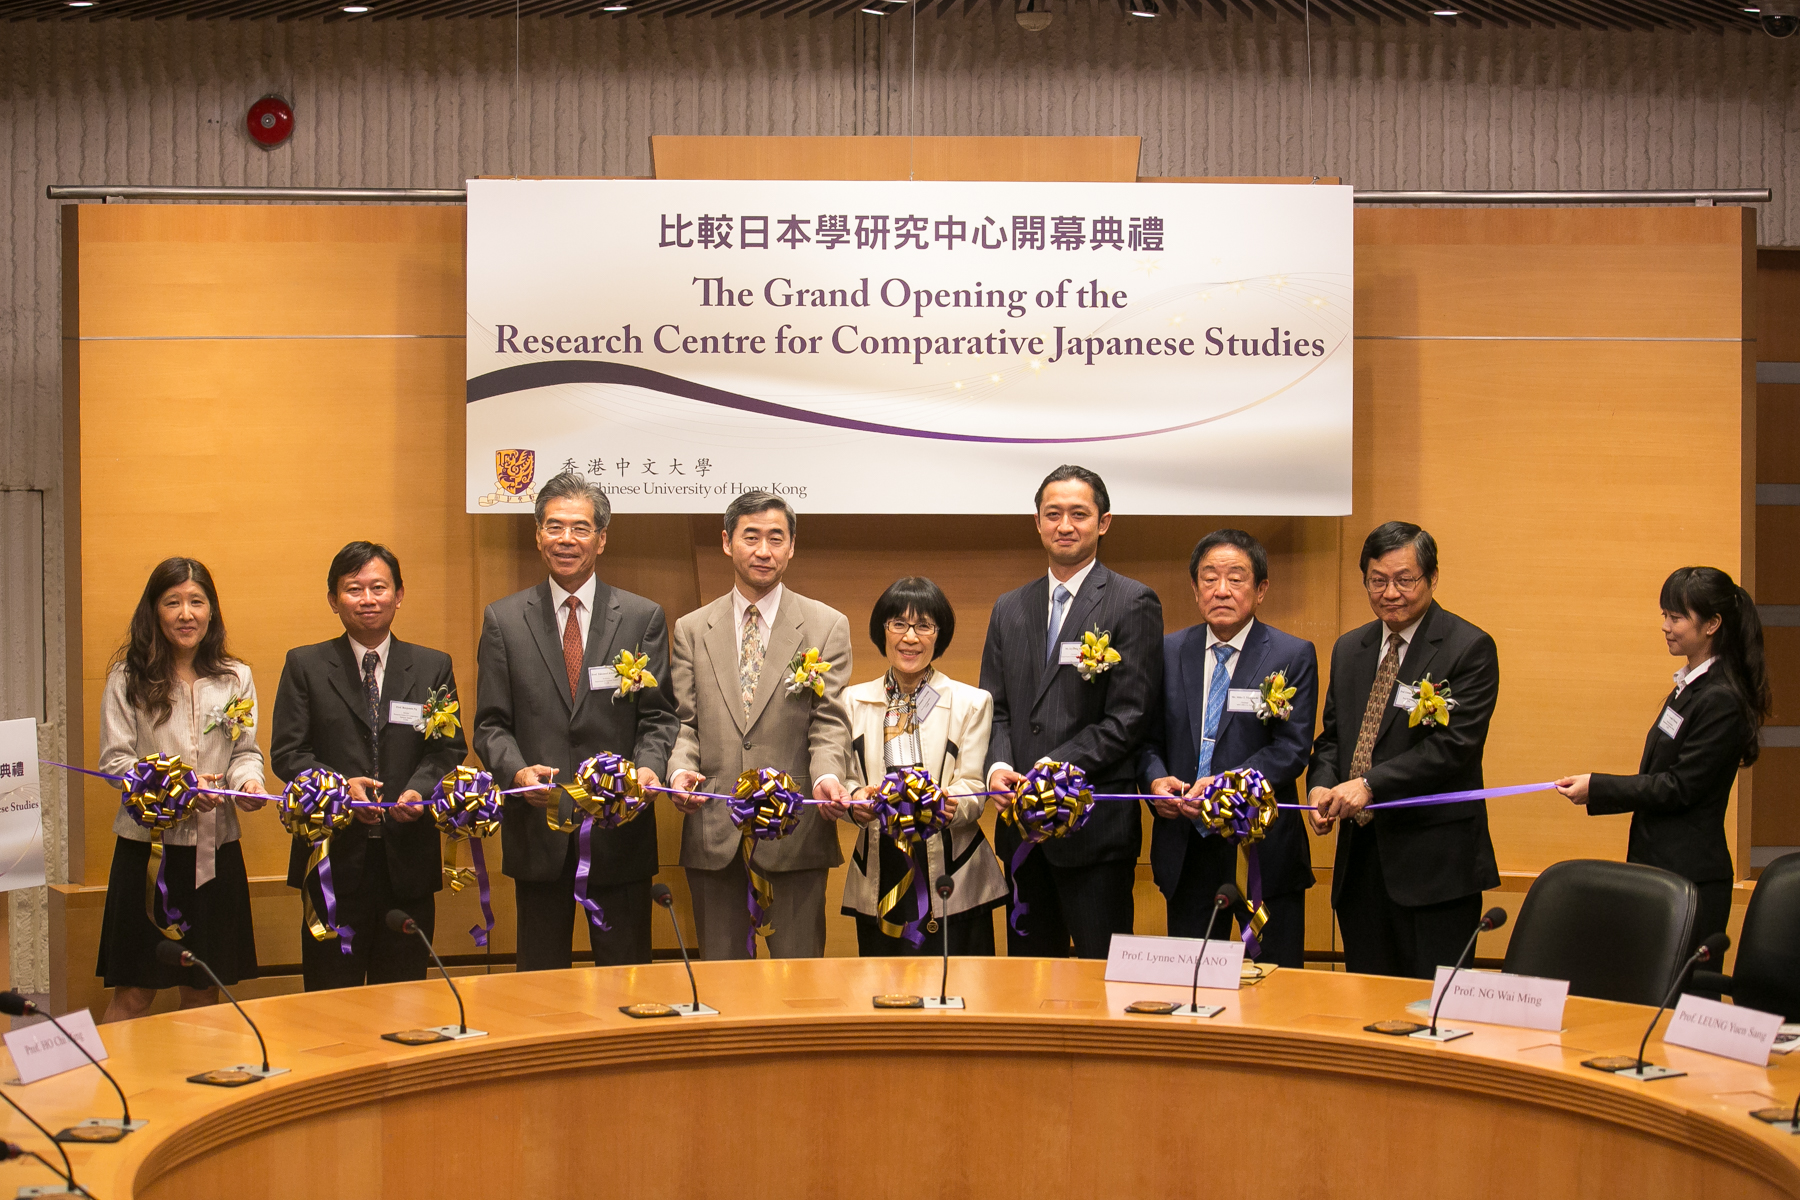 The Grand Opening of the Research Centre for Comparative Japanese Studies